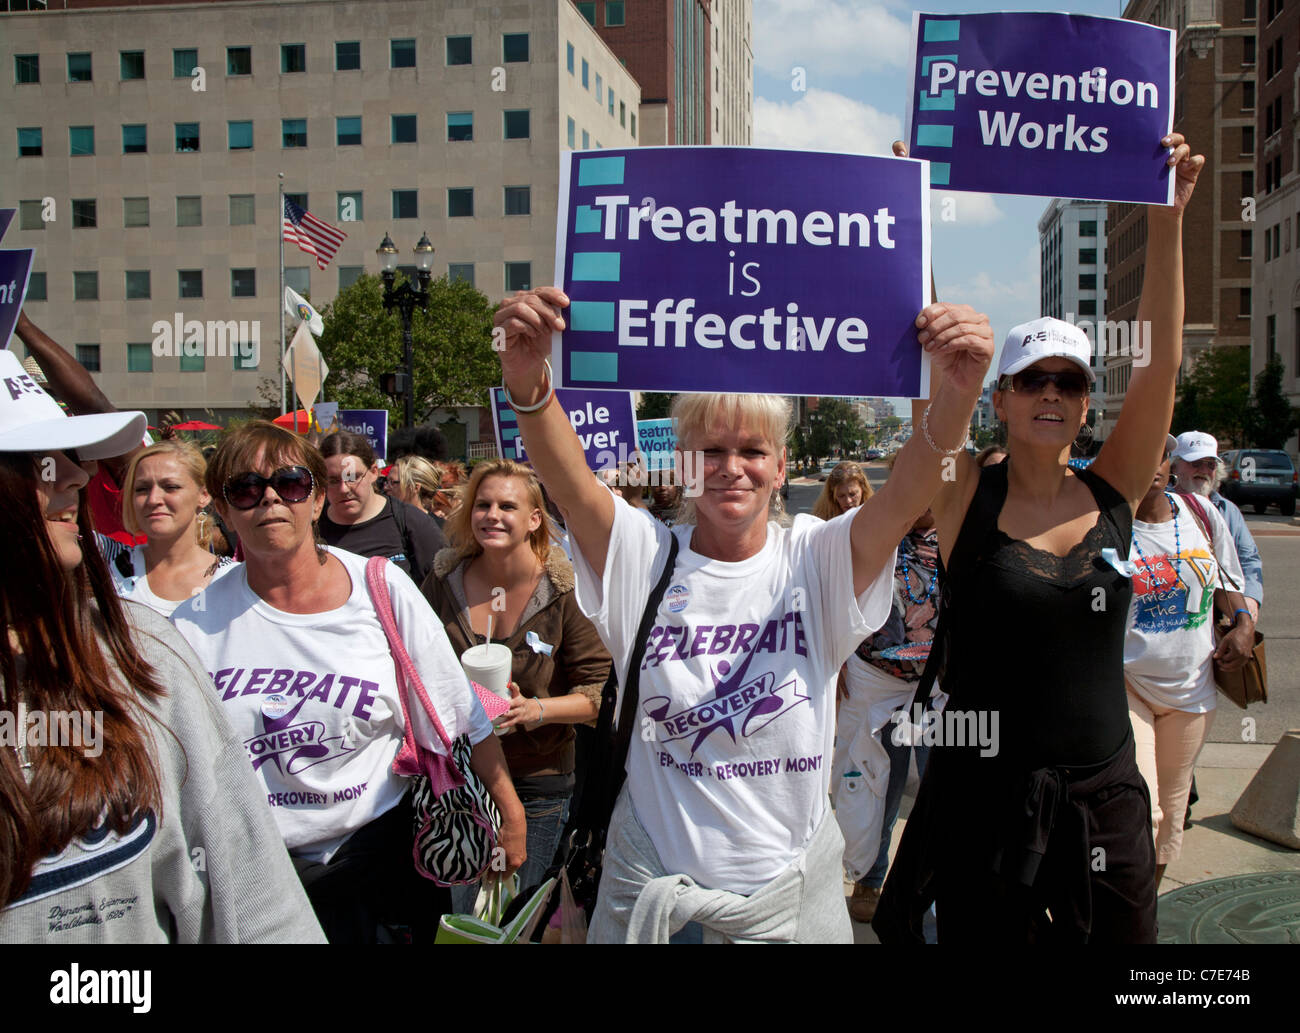 Celebration of Recovery from Alcohol or Drug Addiction - Stock Image